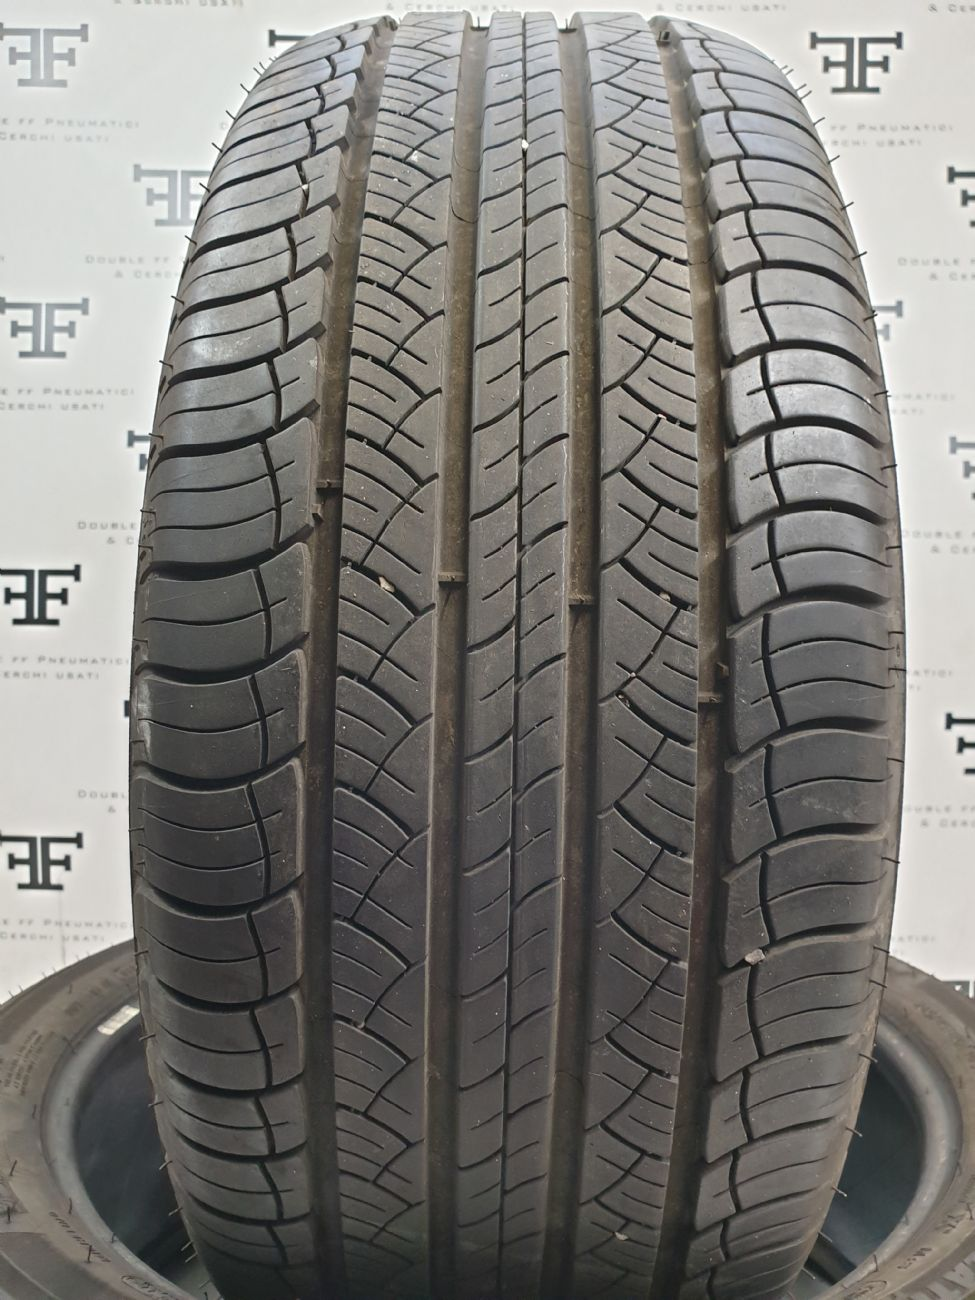 Pneumatici 295 40 R20 106 V MICHELIN LATITUDE TOUR HP N0 M+S 4 seasons usati 220€